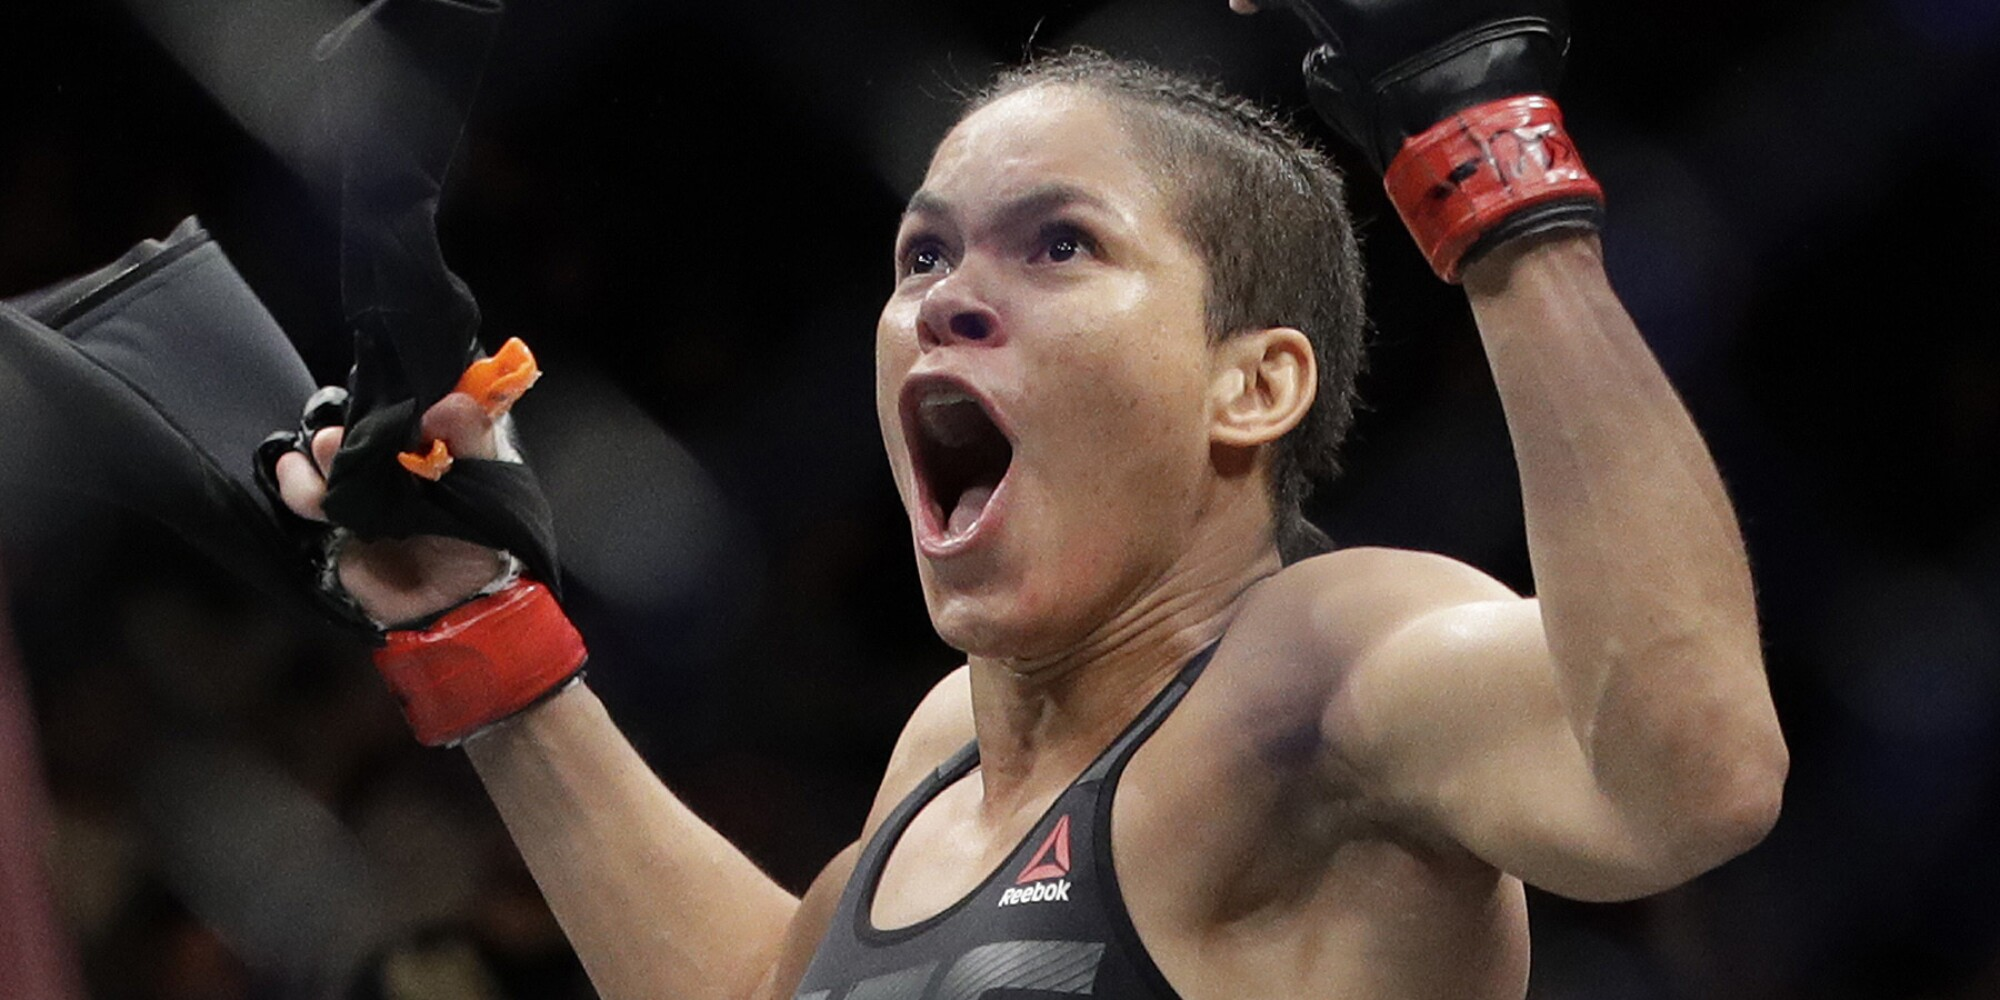 UFC 224 live updates: Fight-by-fight coverage leading up to the Nunes-Pennington main event